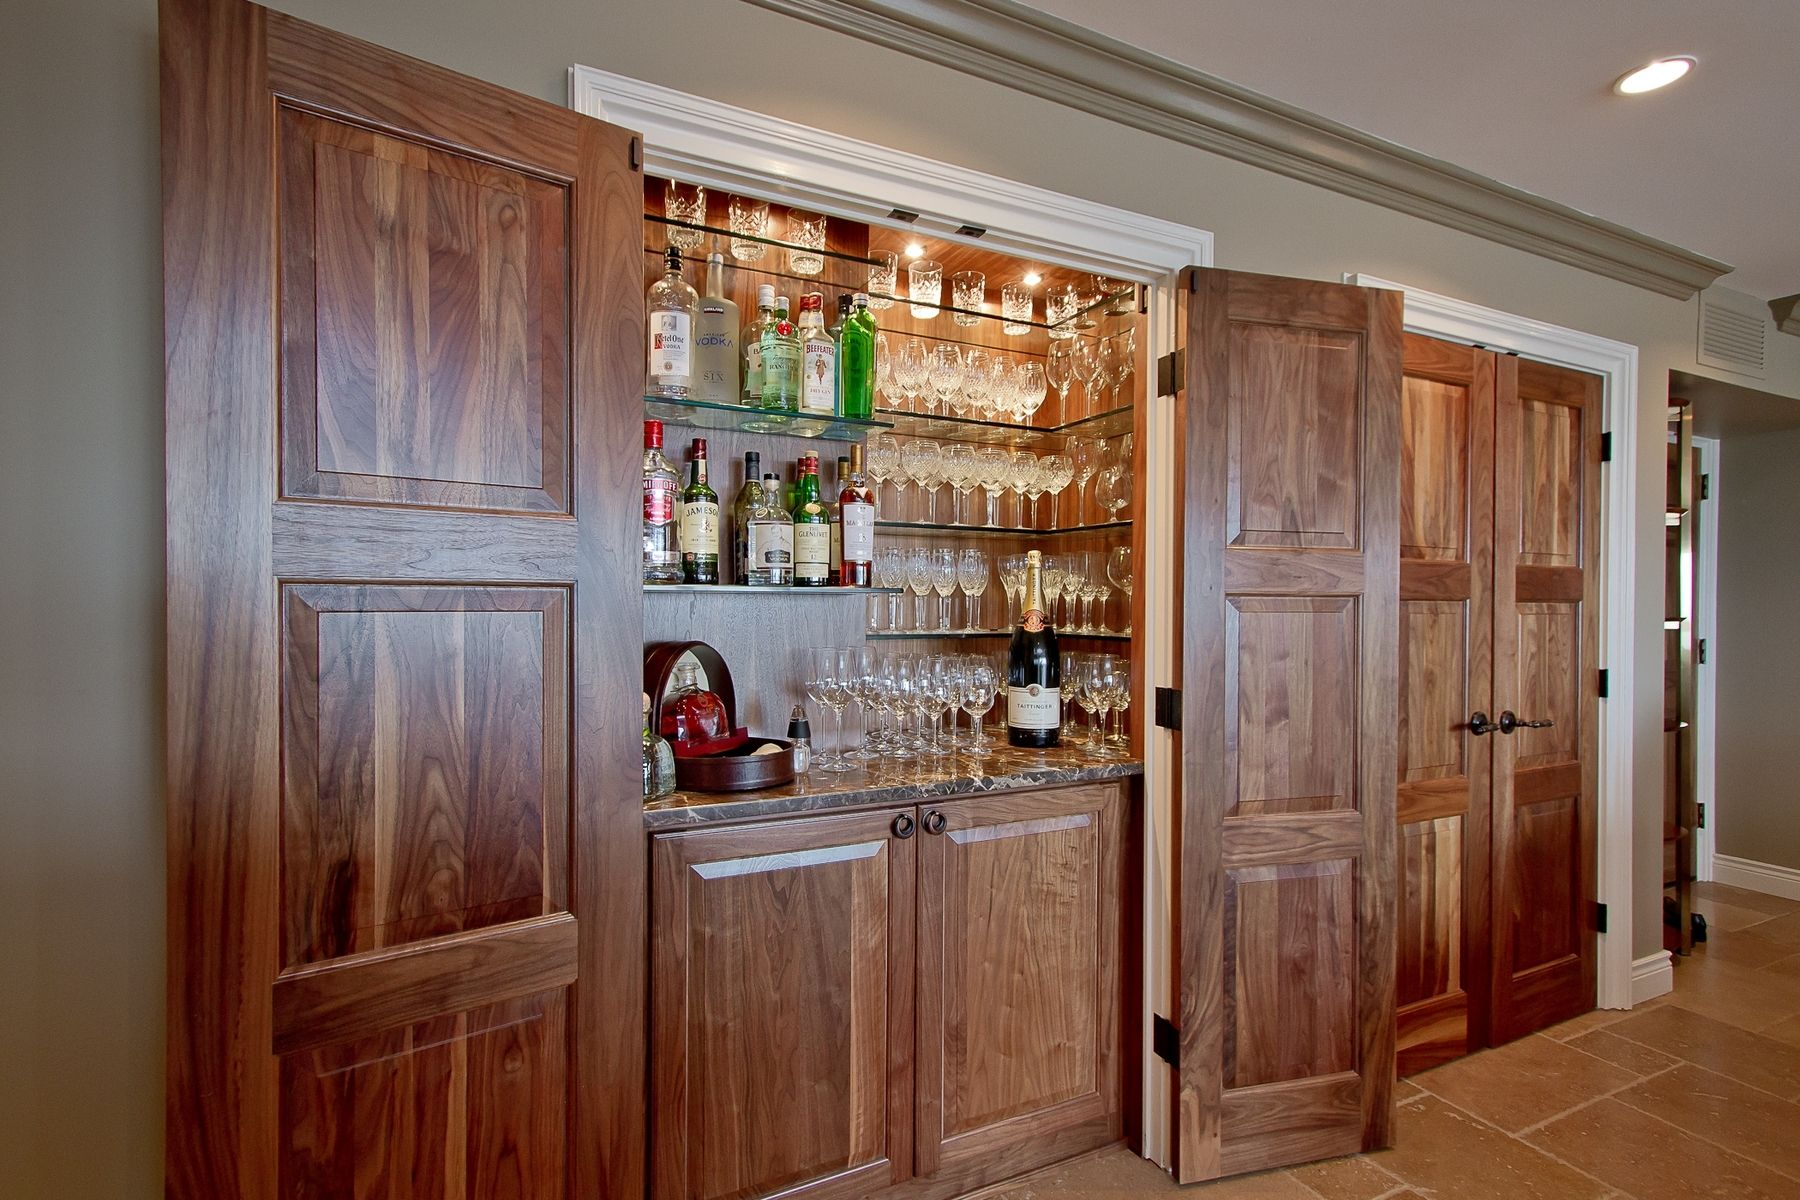 Man Caves and Home Bars | CustomMade.com